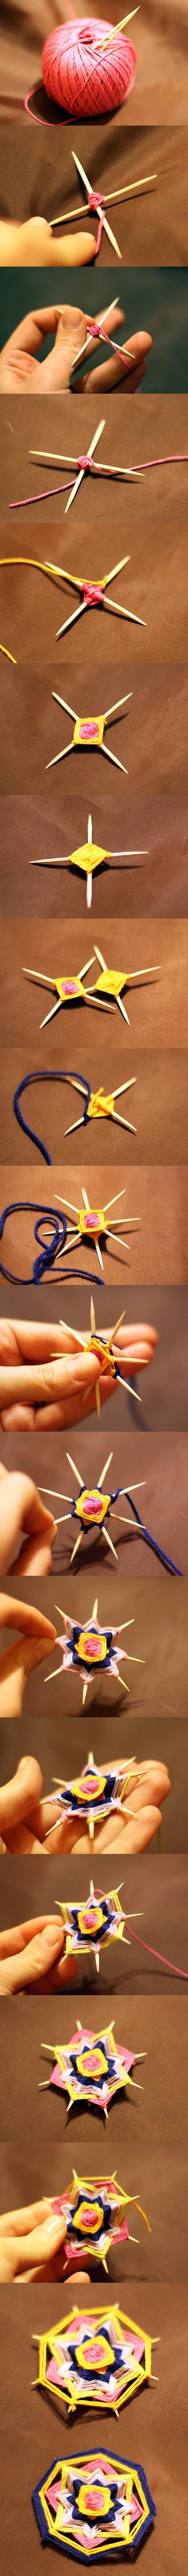 DIY Weave a Mandala Brooch with Toothpicks #craft #Mandala #brooch